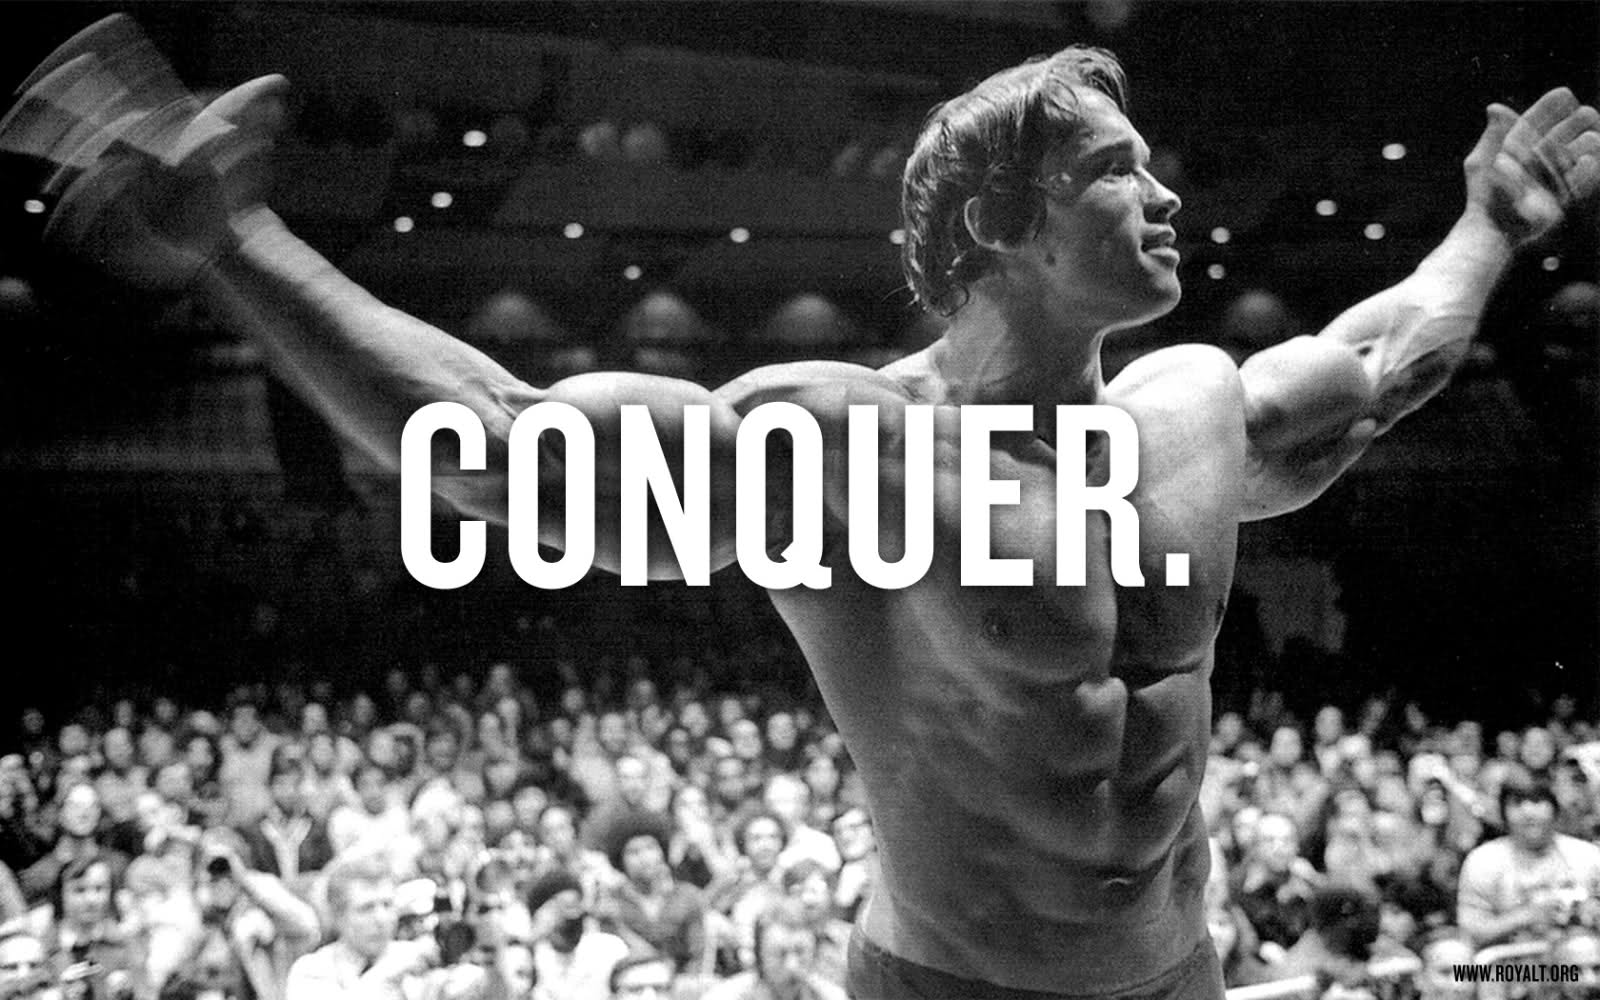 Men Bodybuilding Motivation Quotes Images And Wallpapers 1600x1000